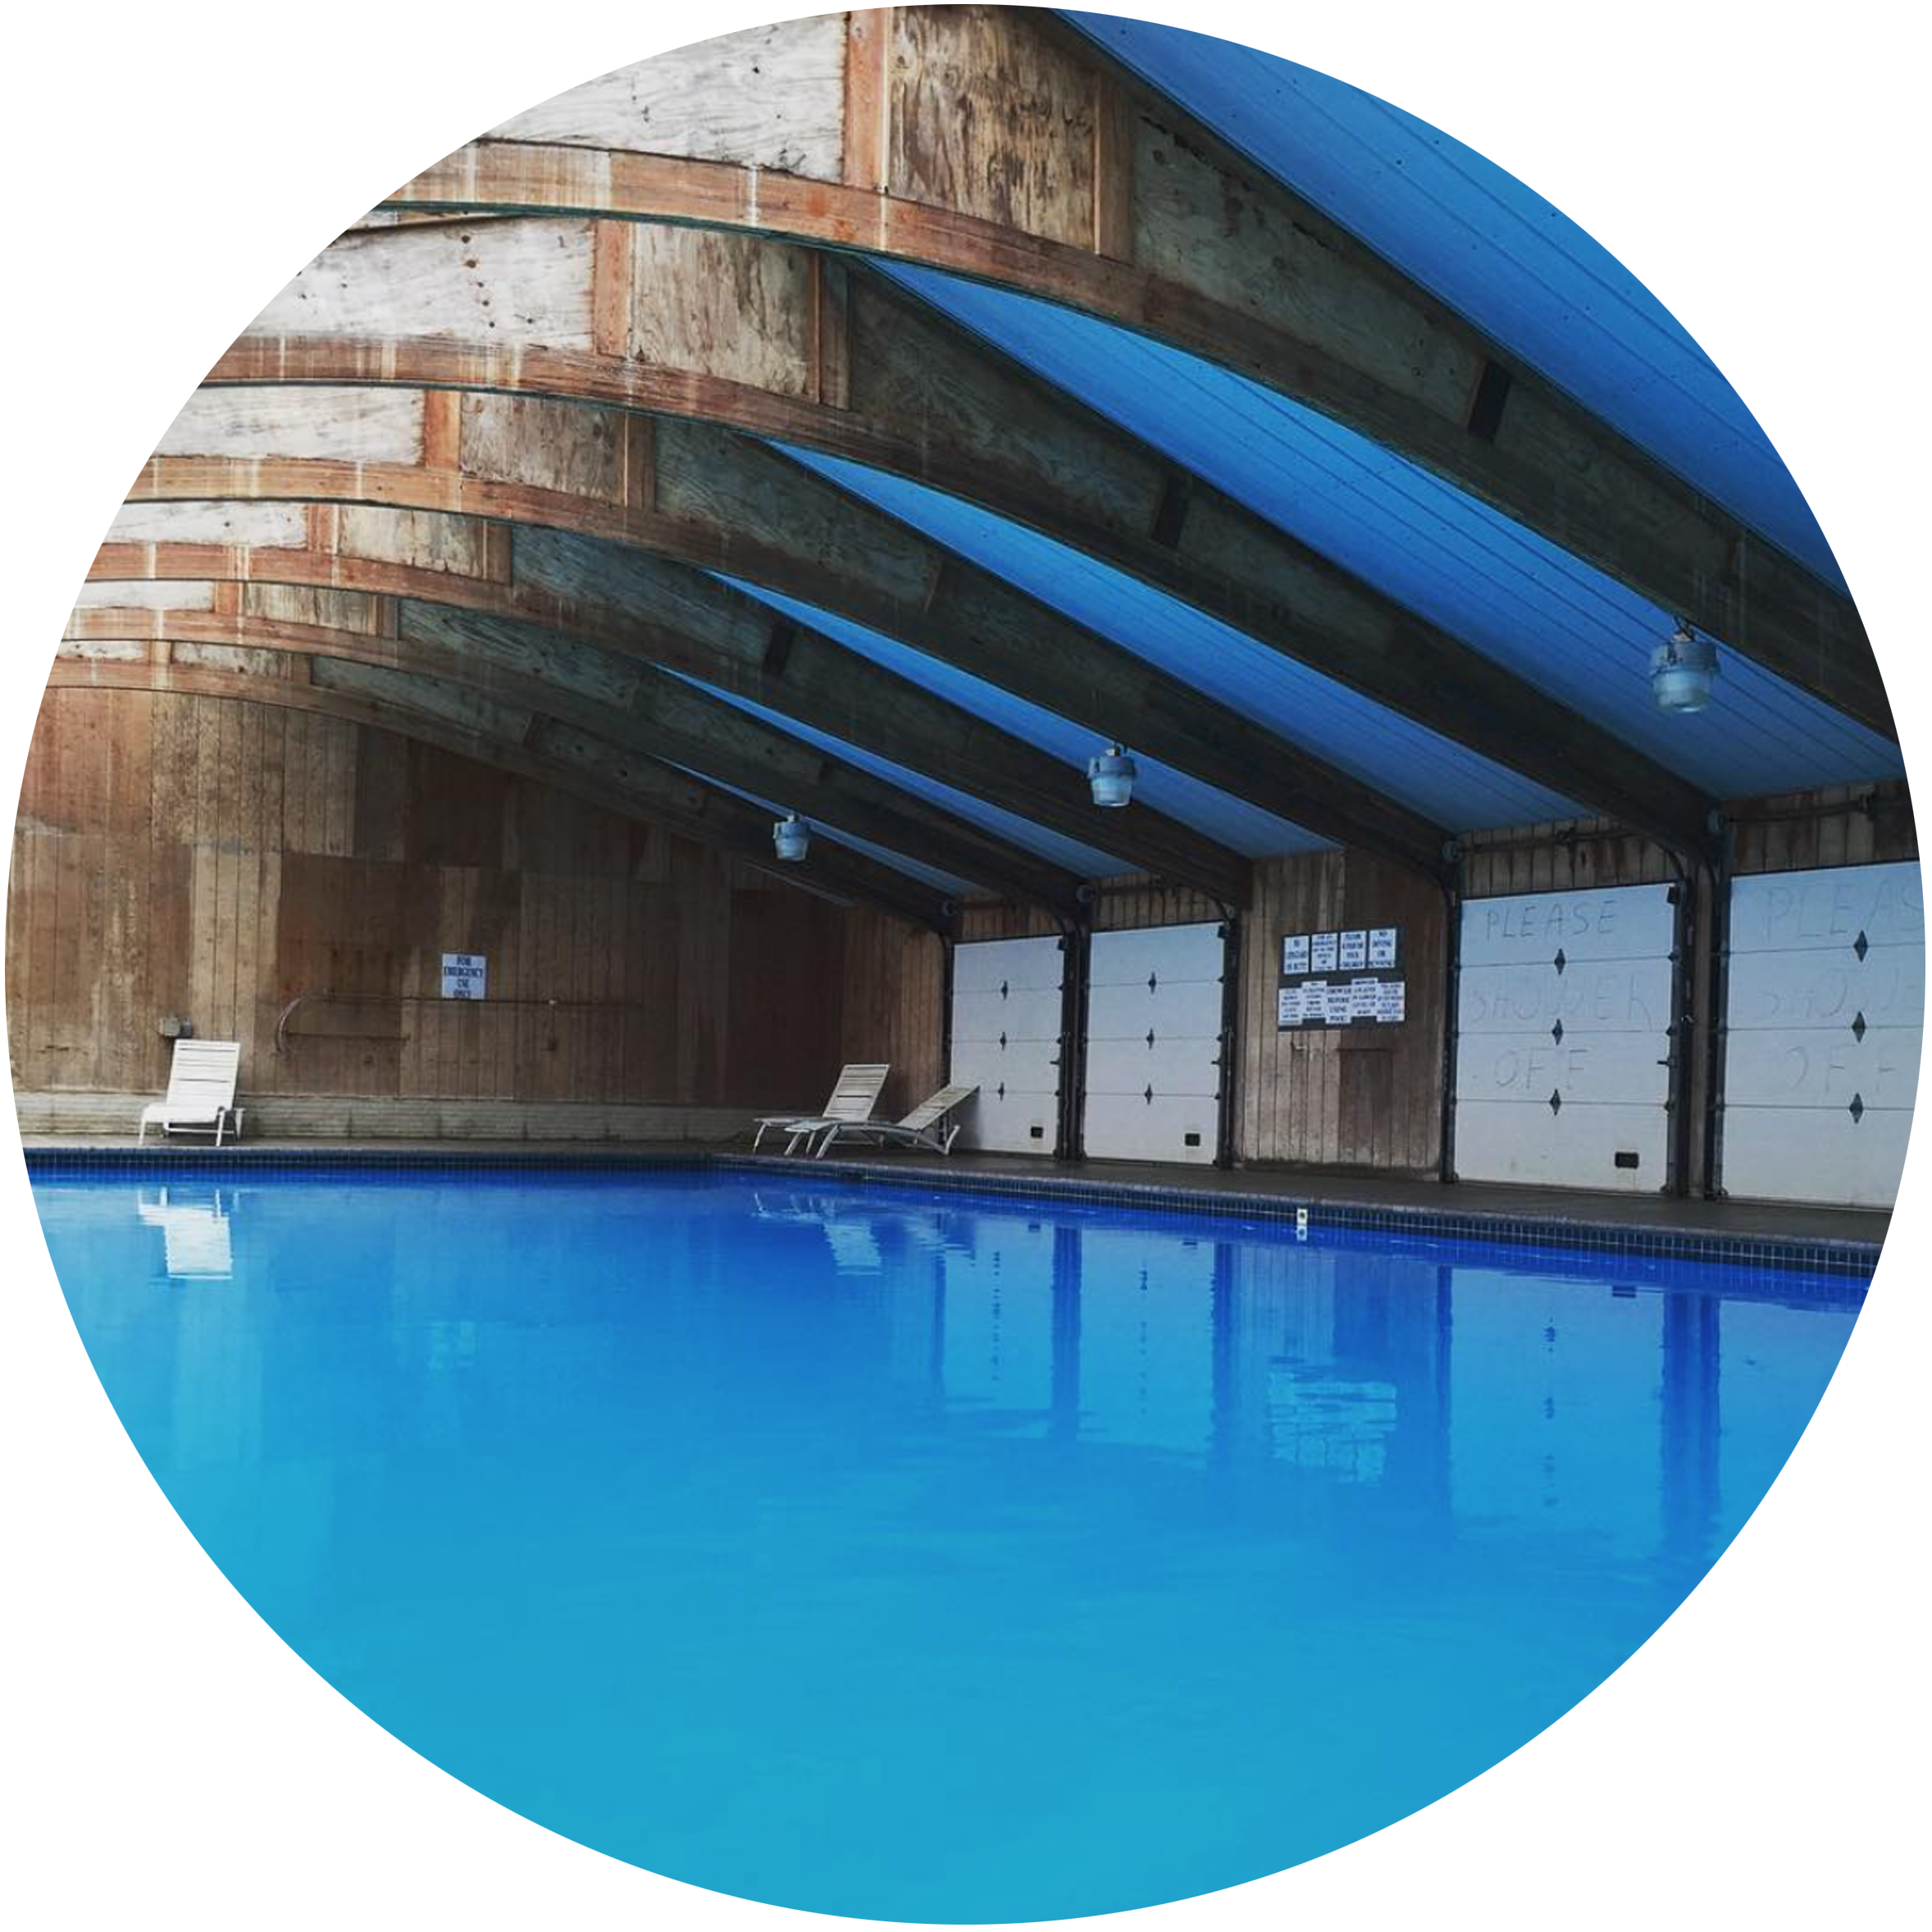 Three-Season Indoor Heated Swimming Pool  As guests of the Resort, you have free access to our pool. Rain or shine, you can enjoy. Stairs entrance points for your convenience. Pool is usually open from May 1 through mid-October.